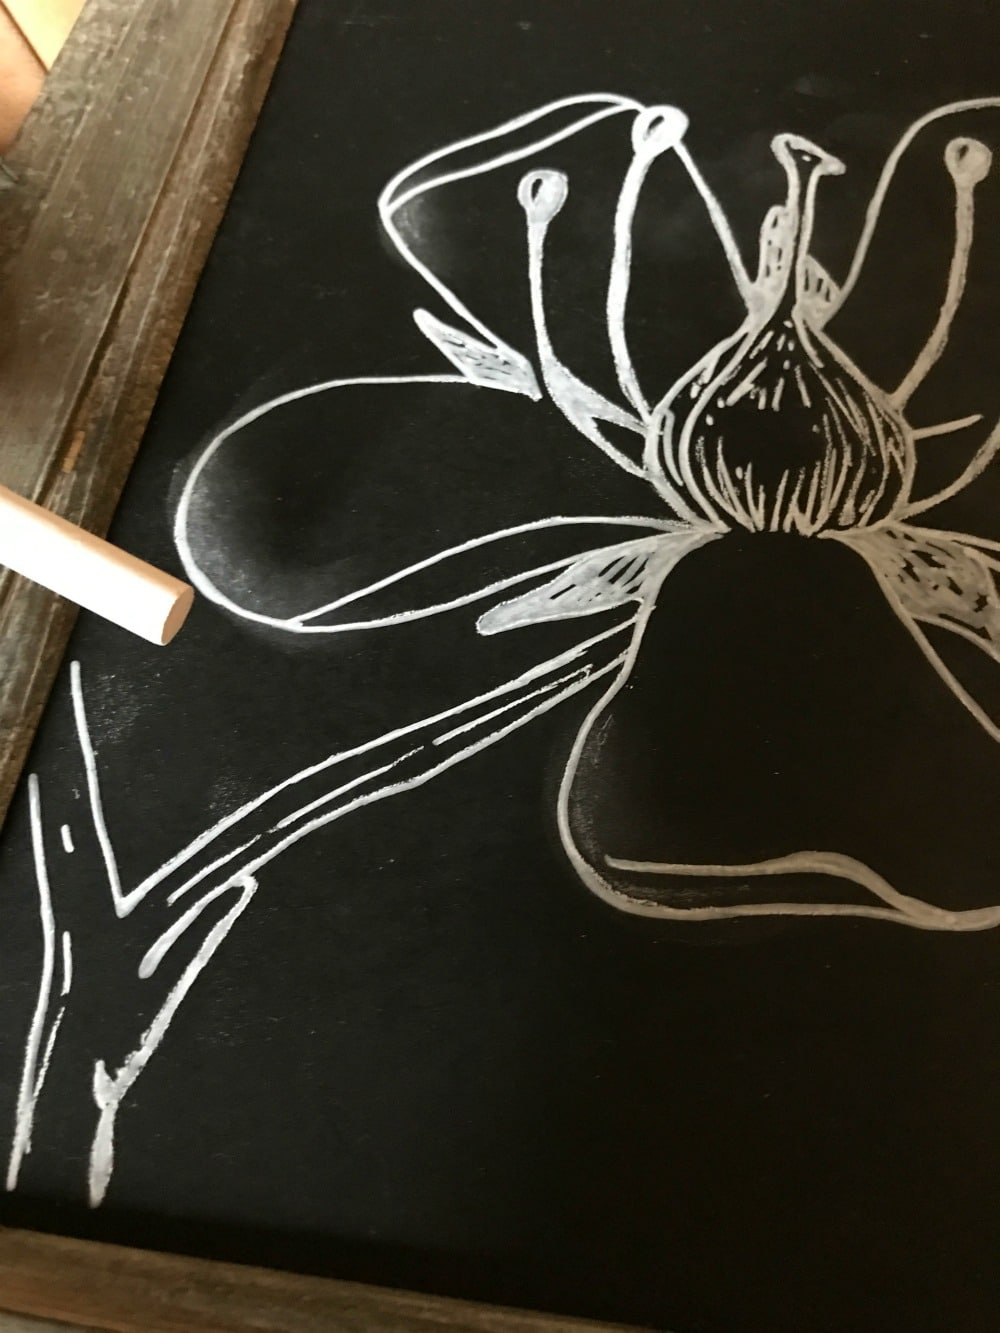 The Easy Trick To Diy Chalkboard Art And Lettering | Good In regarding Name Tracing Chalkboard